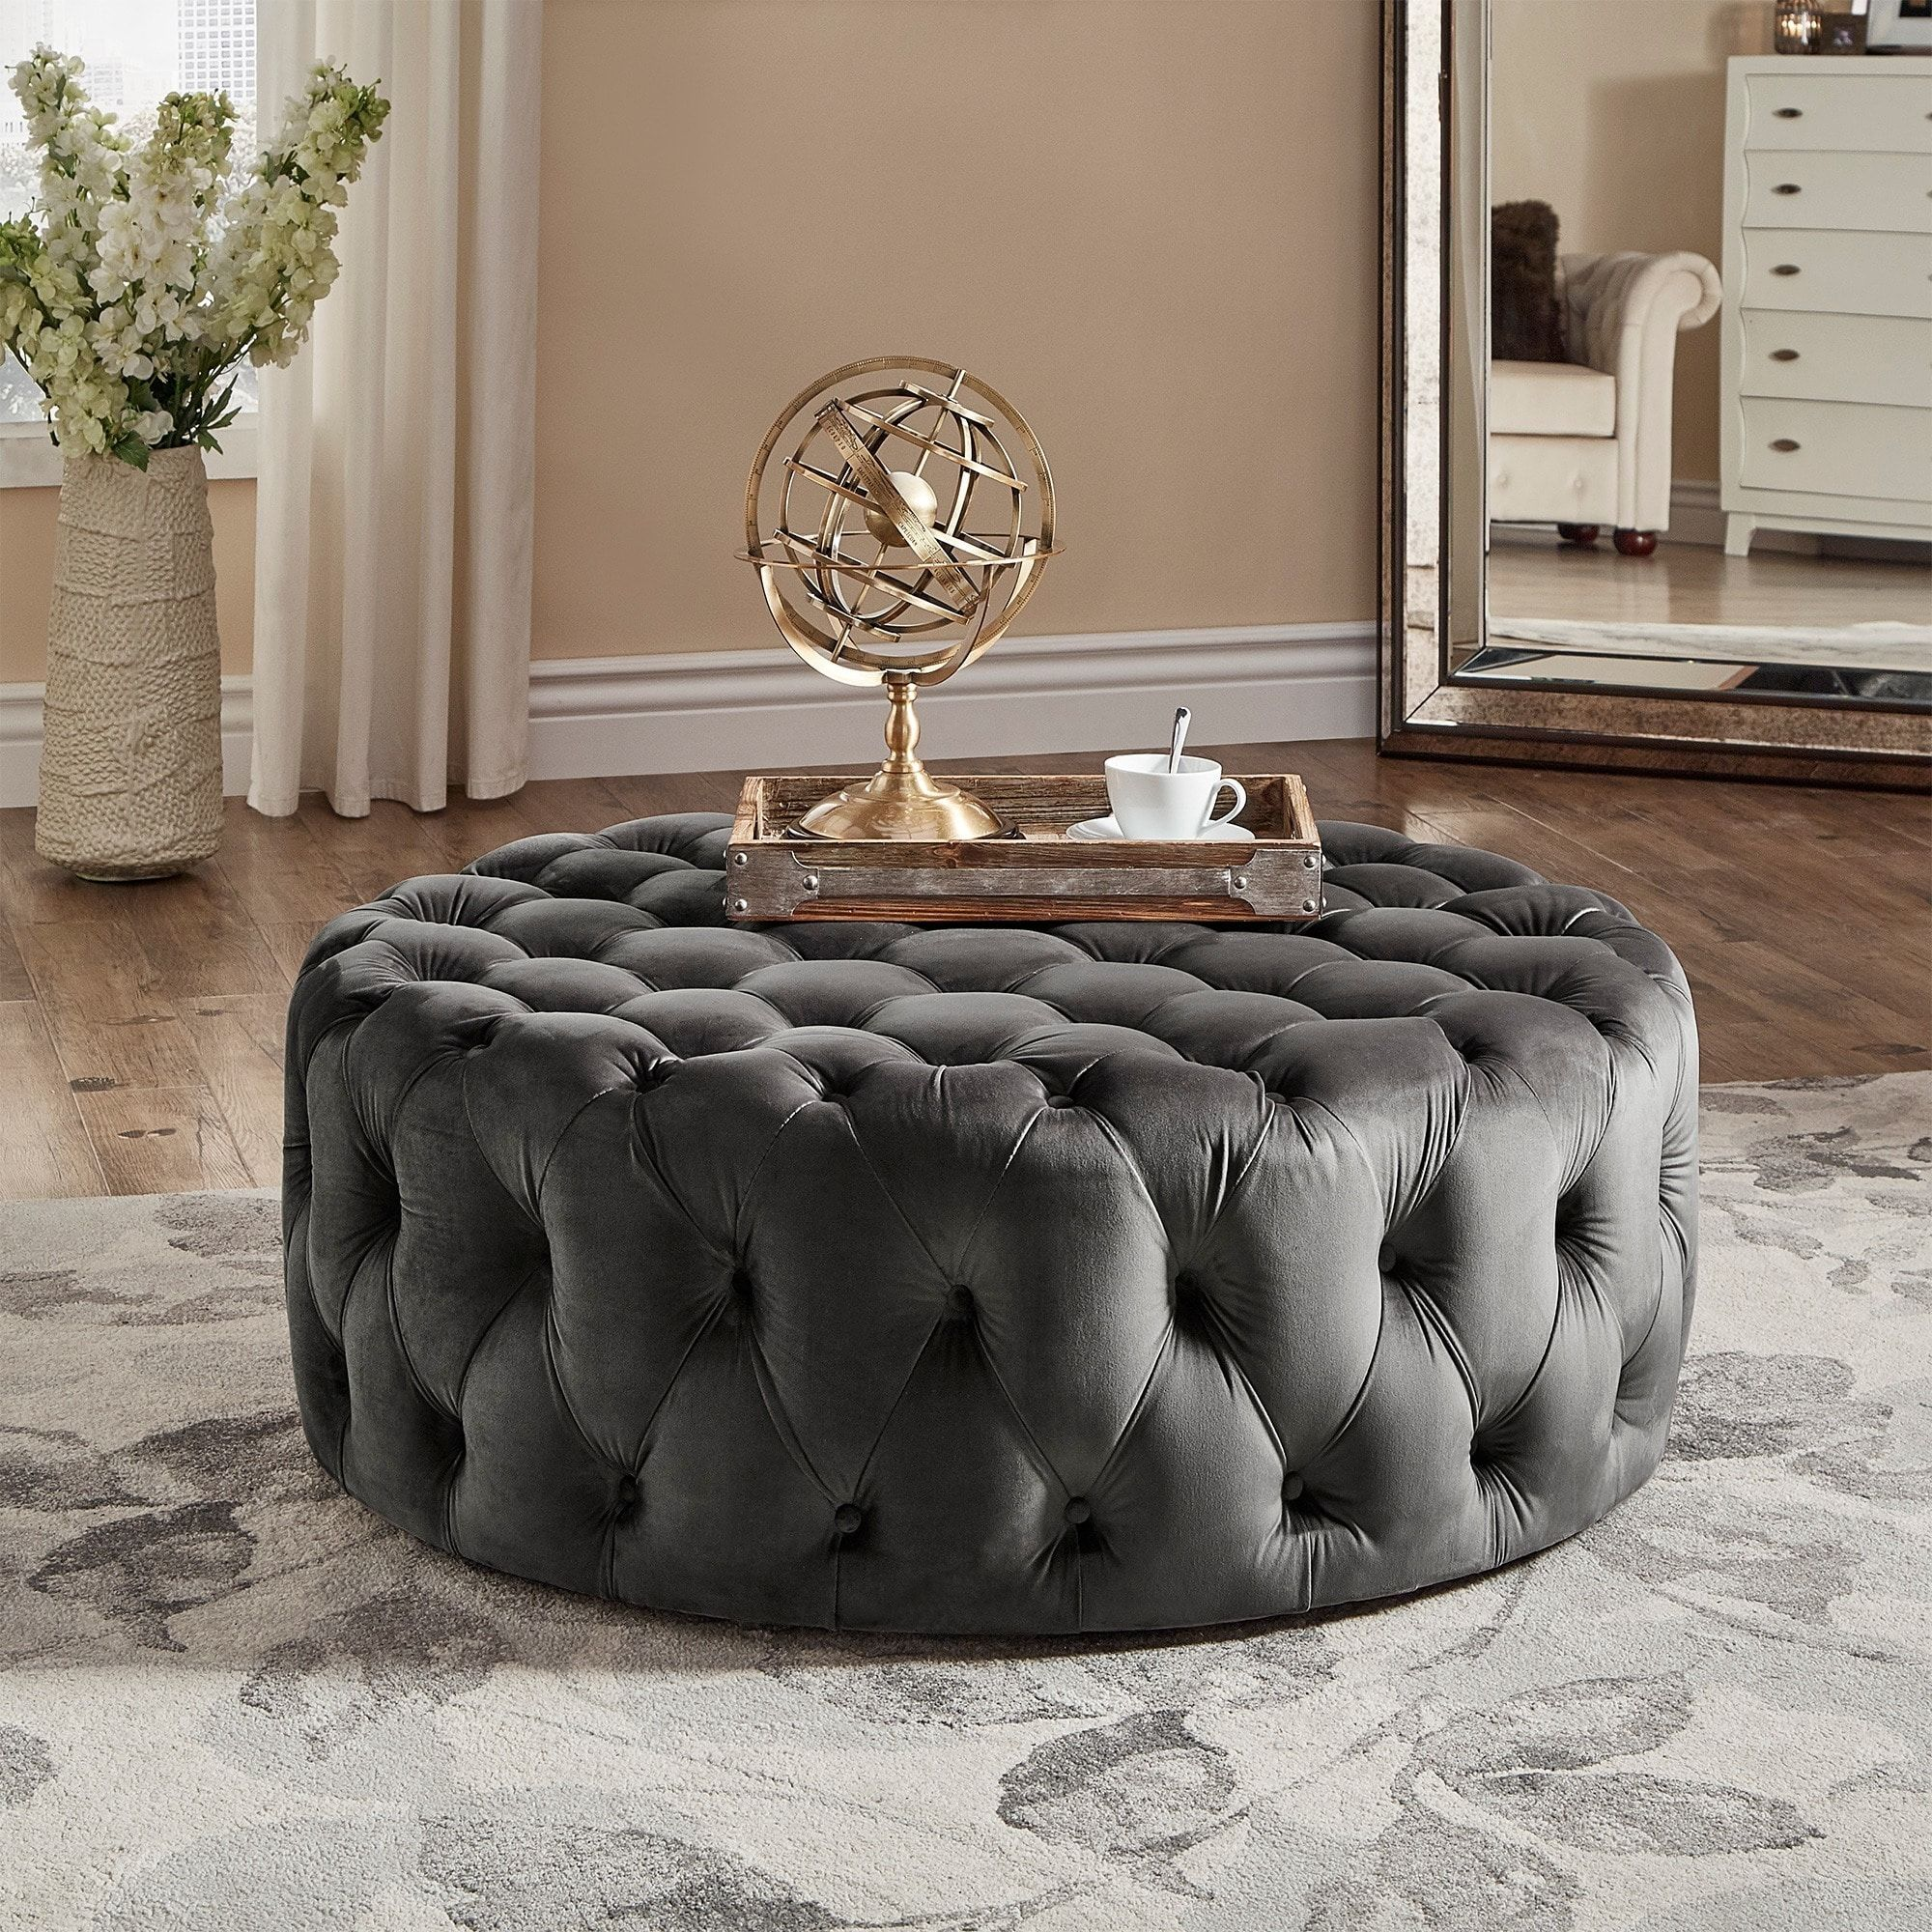 Outstanding Knightsbridge Round Tufted Cocktail Ottoman With Casters By Caraccident5 Cool Chair Designs And Ideas Caraccident5Info